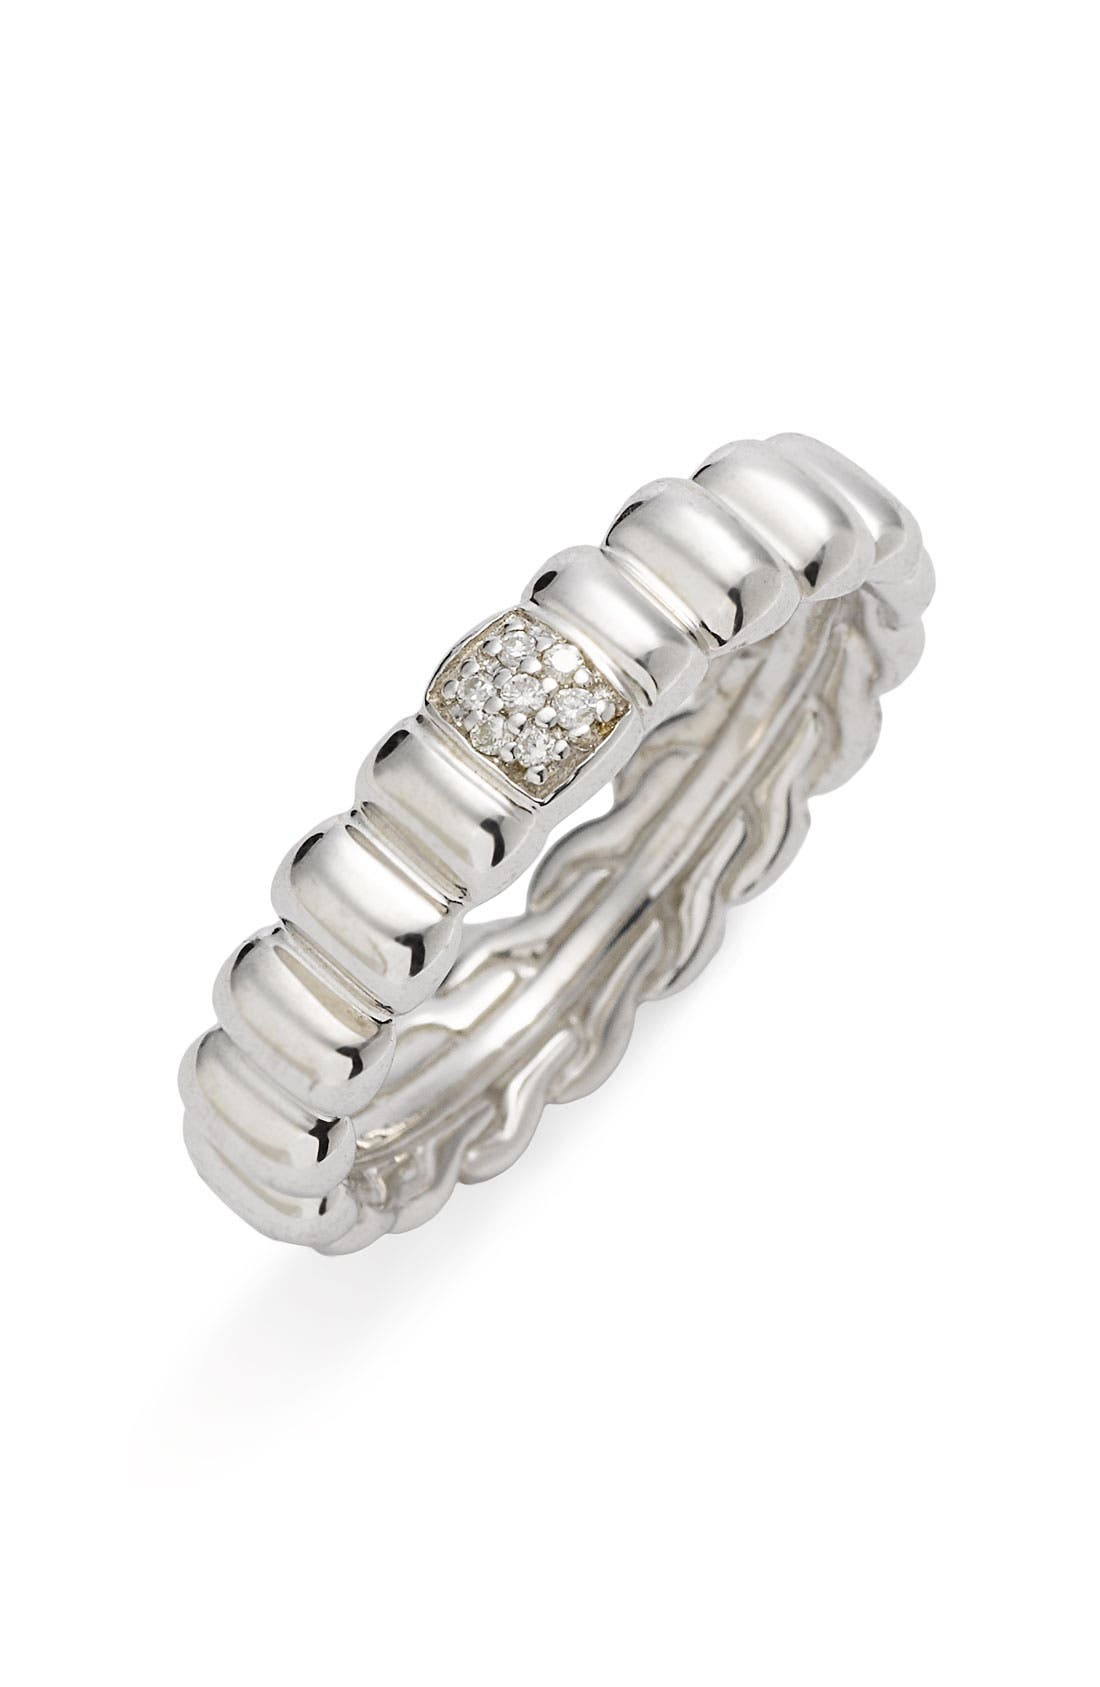 Alternate Image 1 Selected - John Hardy 'Bedeg' Slim Diamond Pavé Ring